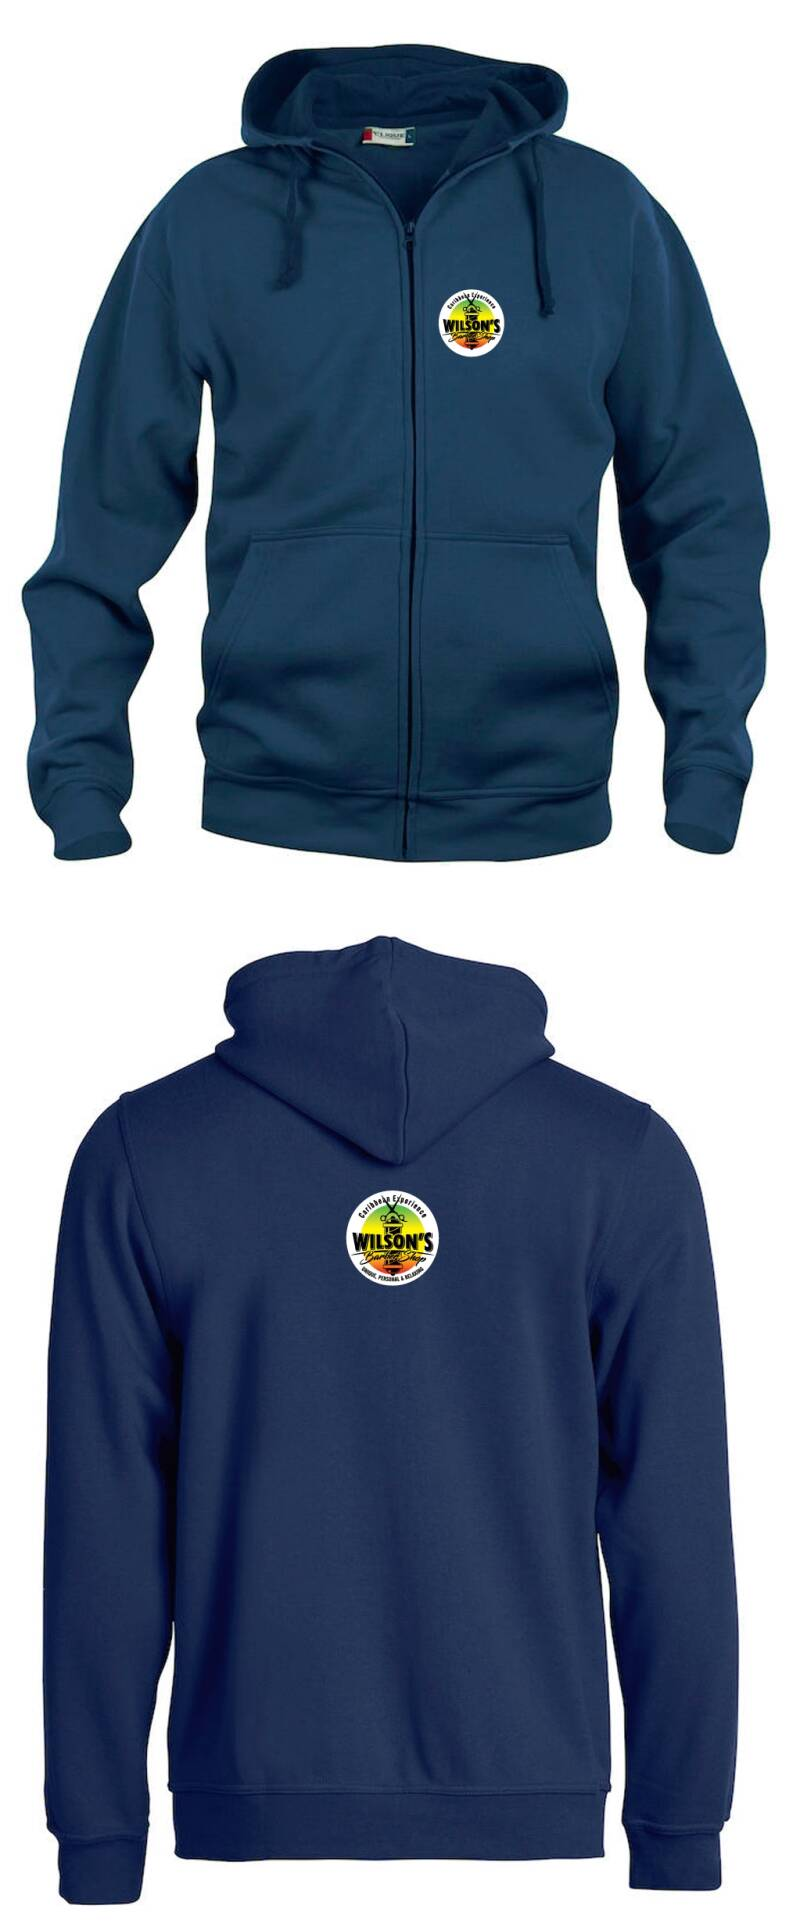 Designer Hoodie 2020! 1st Year Limited Edition. NAVY BLUE with ZIPPER